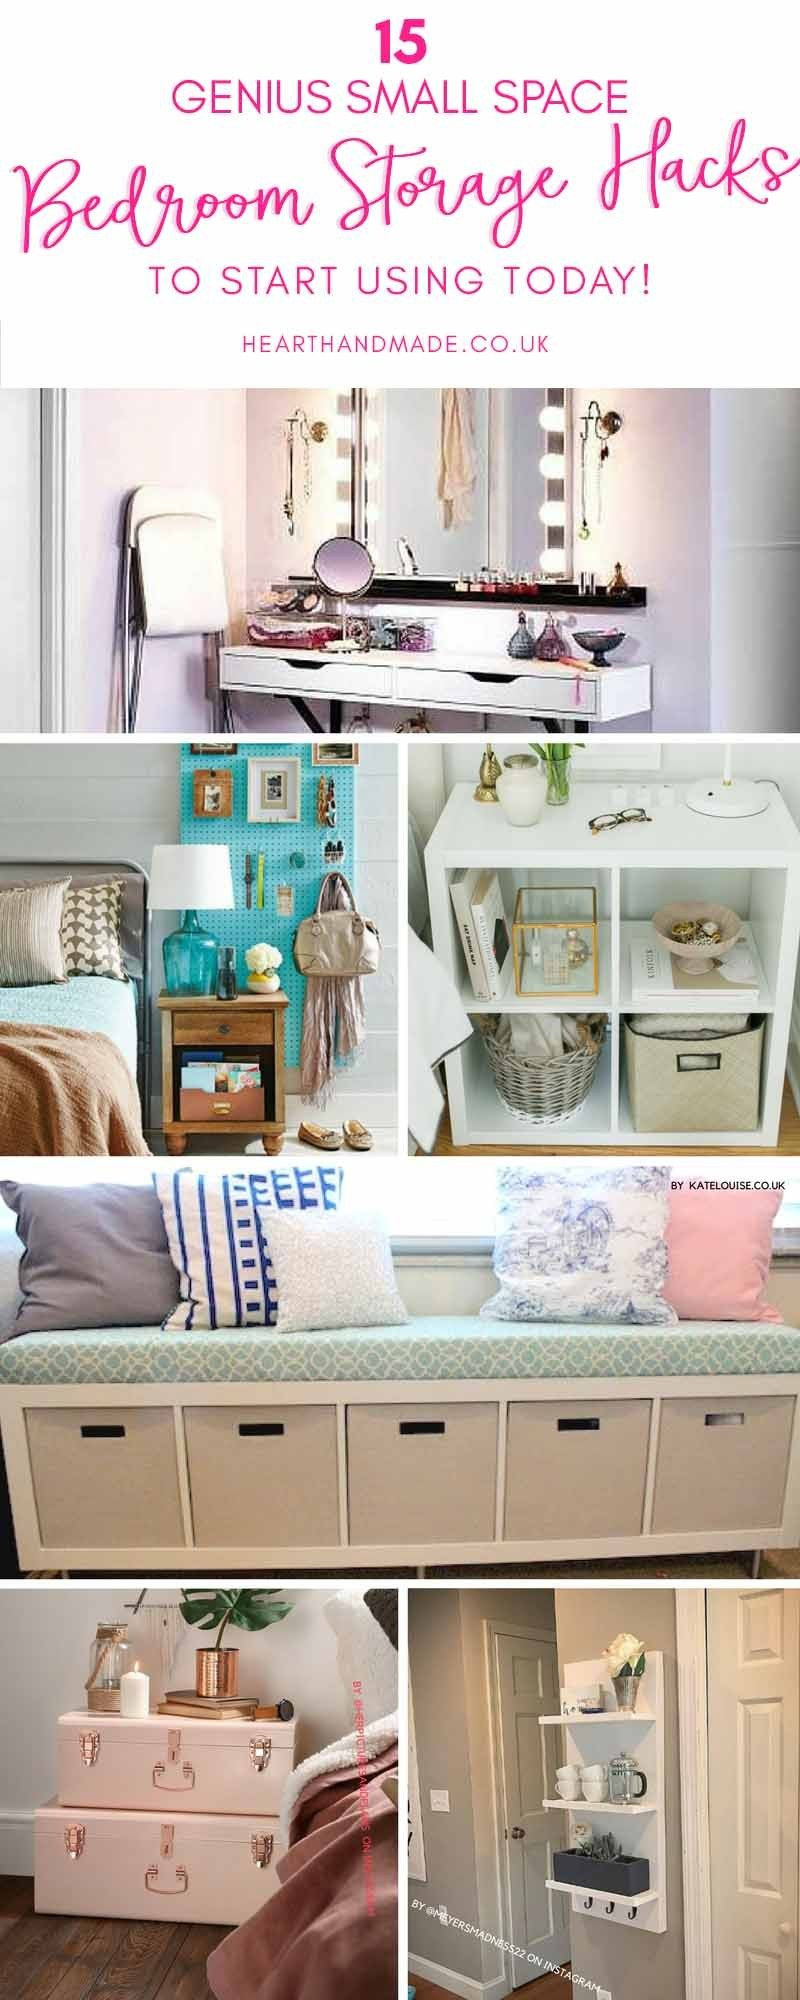 Are You In Need Of Some Genius Bedroom Storage Ideas Bedroom Storage Small Space Bedroom Redecorate Bedroom